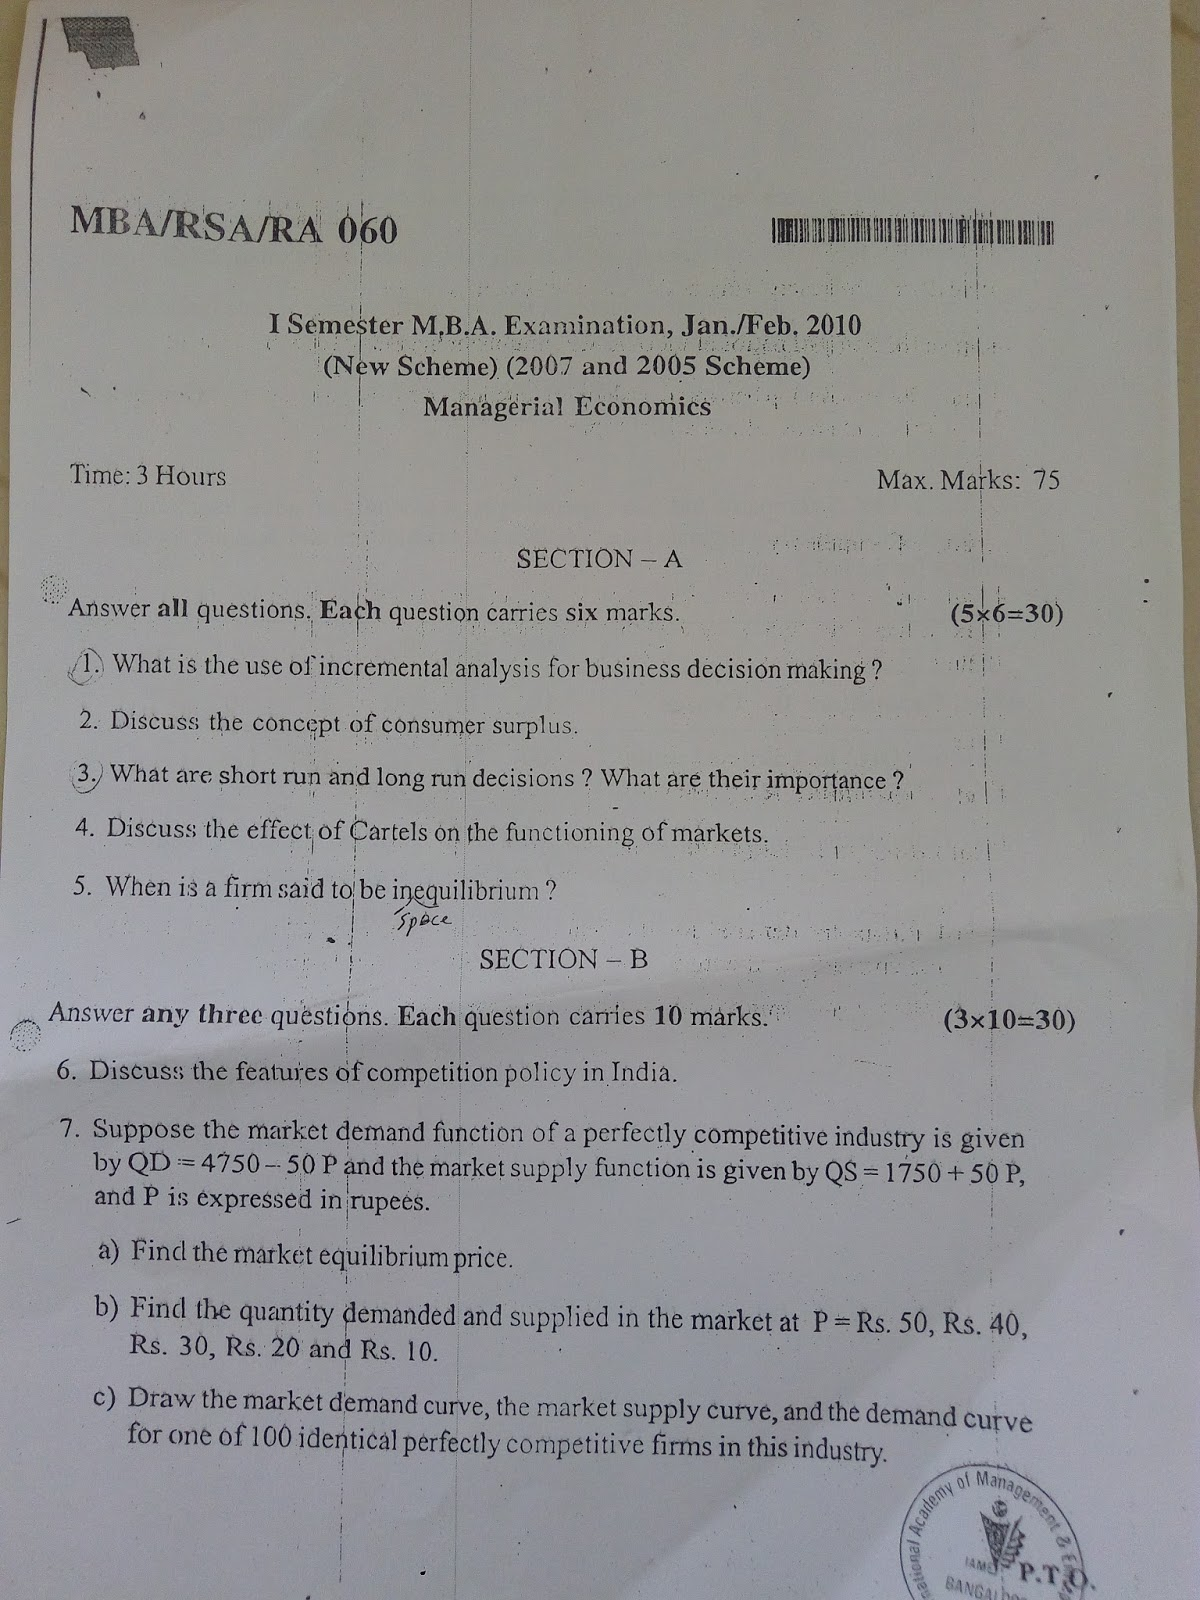 I SEM MANAGERIAL ECONOMICS QUESTION PAPERS of year 2010